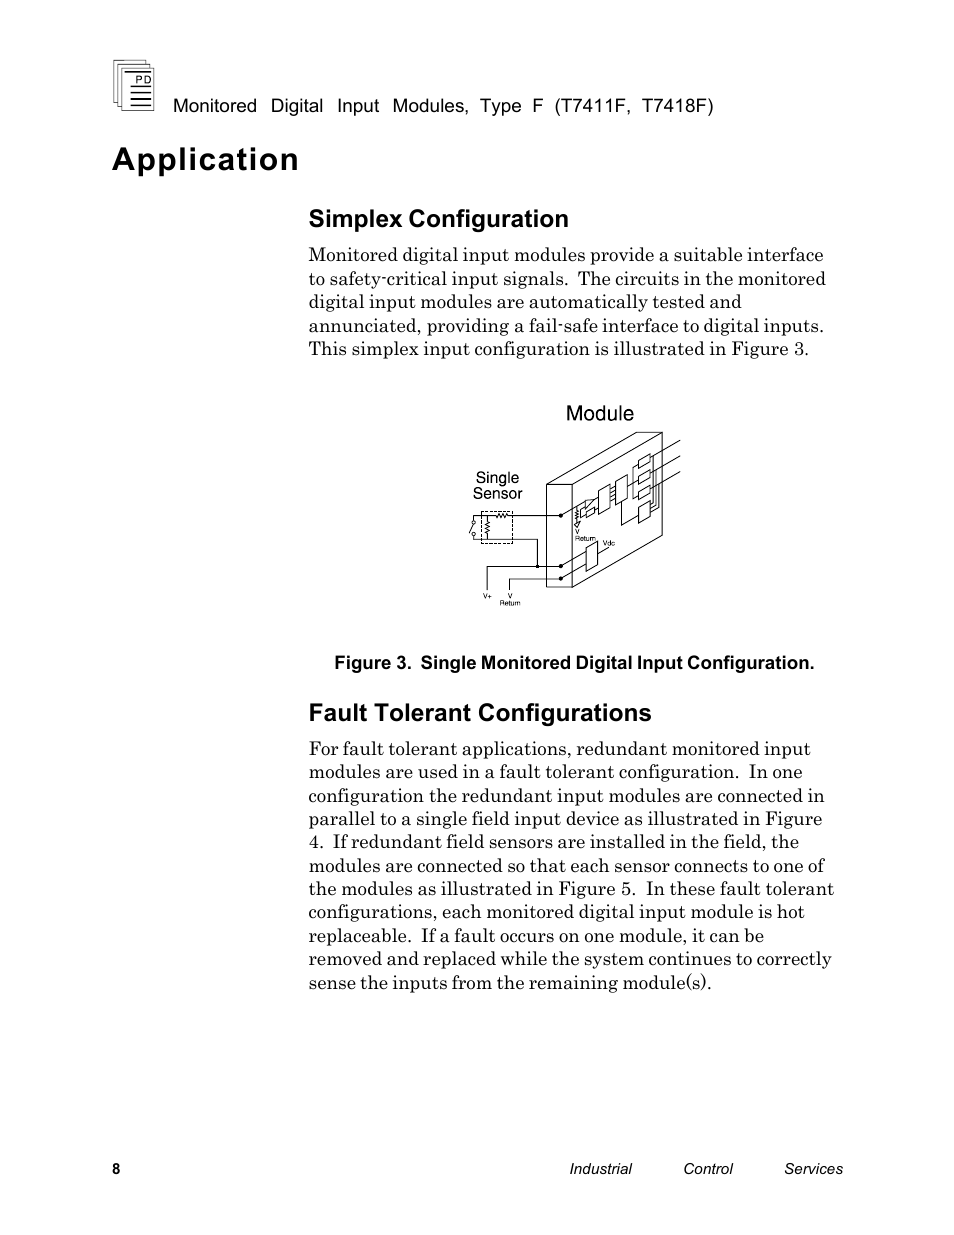 Application, Simplex configuration, Fault tolerant configurations